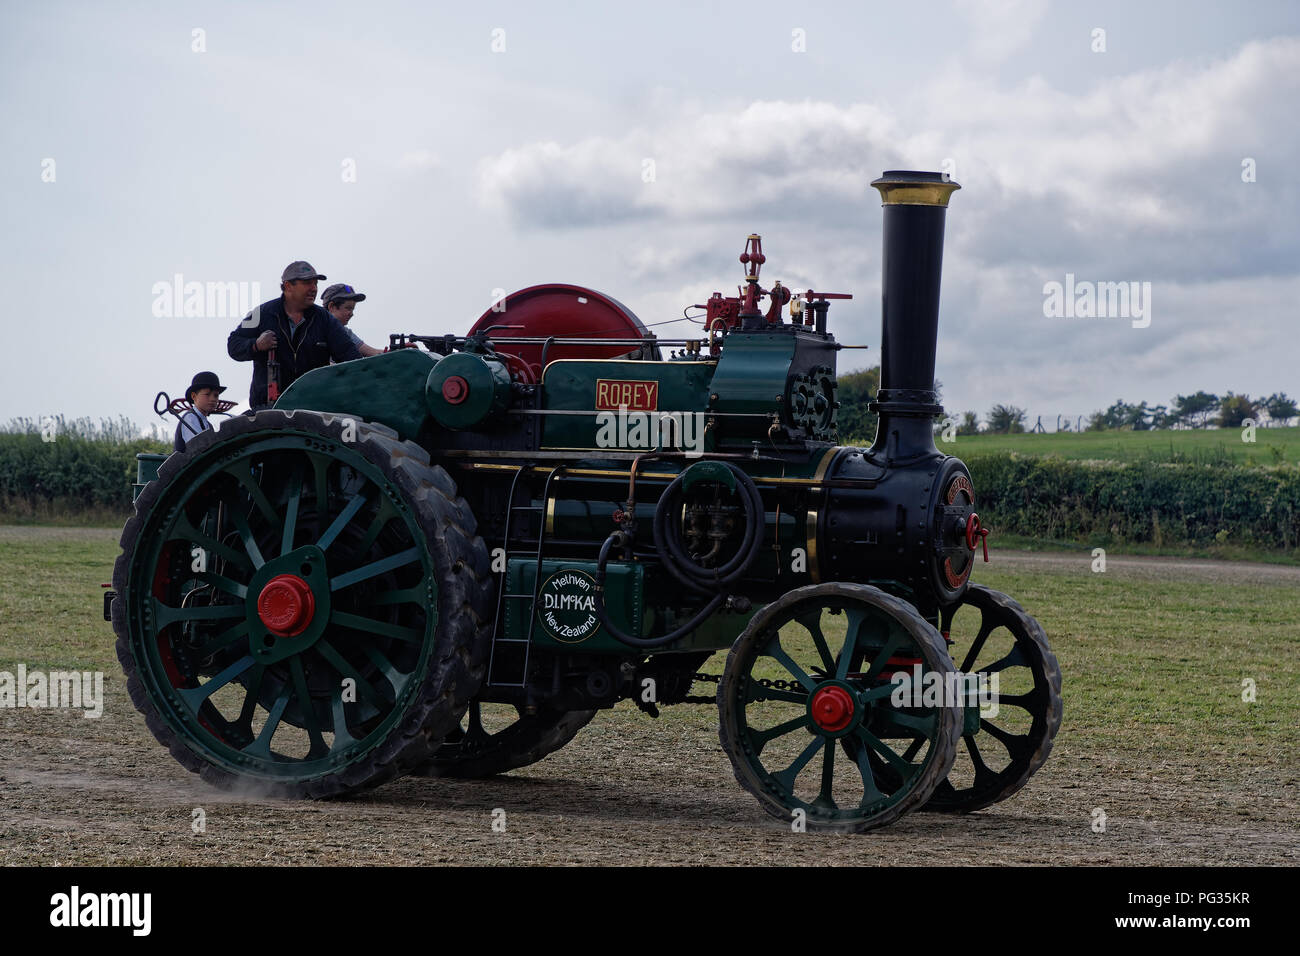 Great Dorset Steam Fair, Blandford, Dorset, UK. 23rd August 2018. Historic steam engines underway at the show. This Robey 8NHP Road Locomotive is owned by Andy McKay ogf Geraldine New Zealand where it operated mostly around Christchurch. Built 1914. Wyrdlight / Alamy Live News - Stock Image